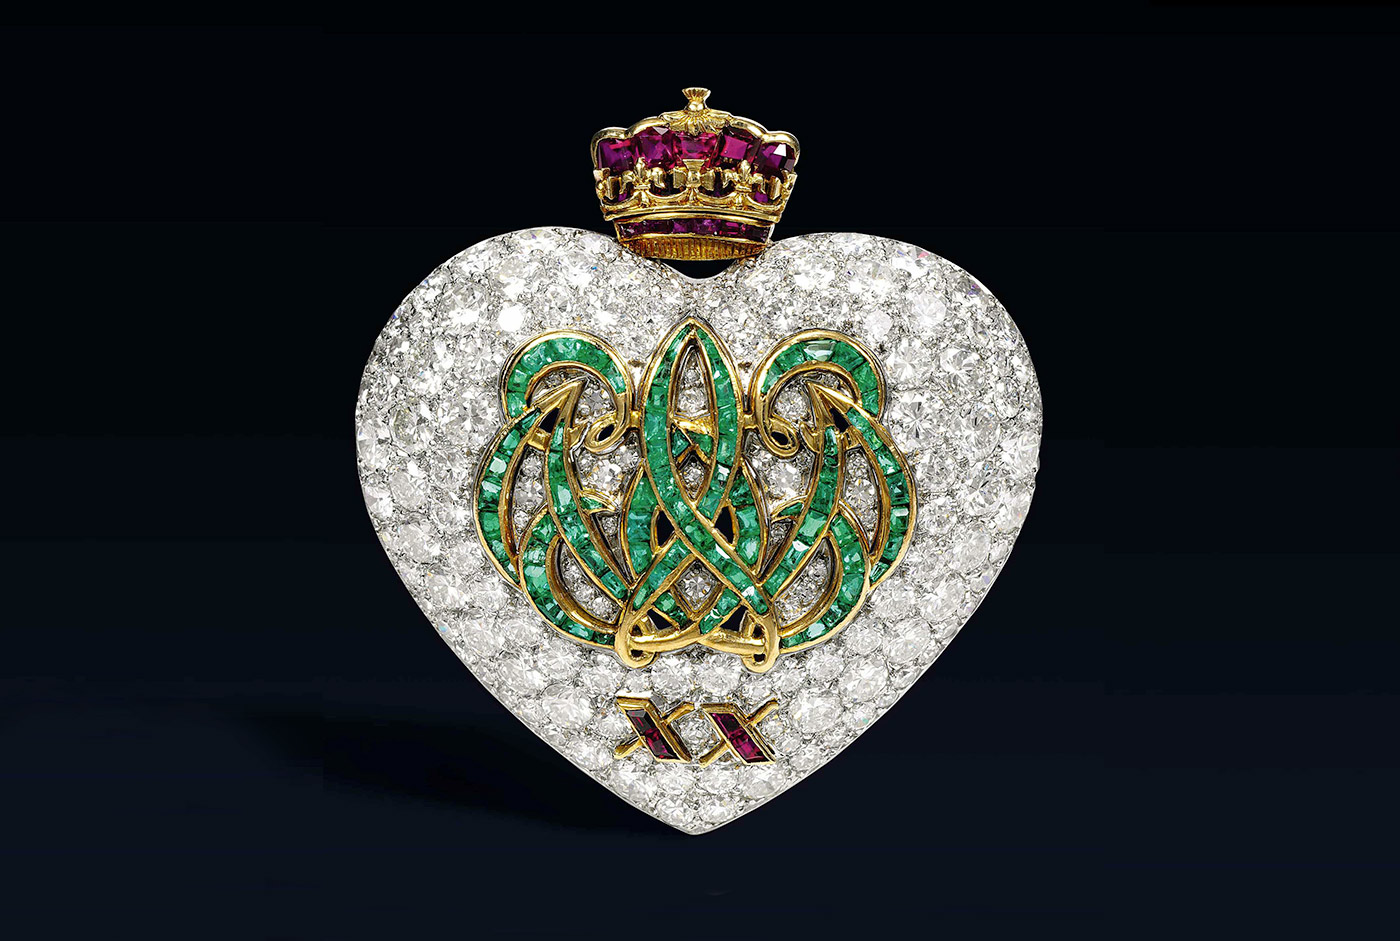 Wallis Simpson's heart motif brooch with diamonds, emeralds and rubies in yellow gold